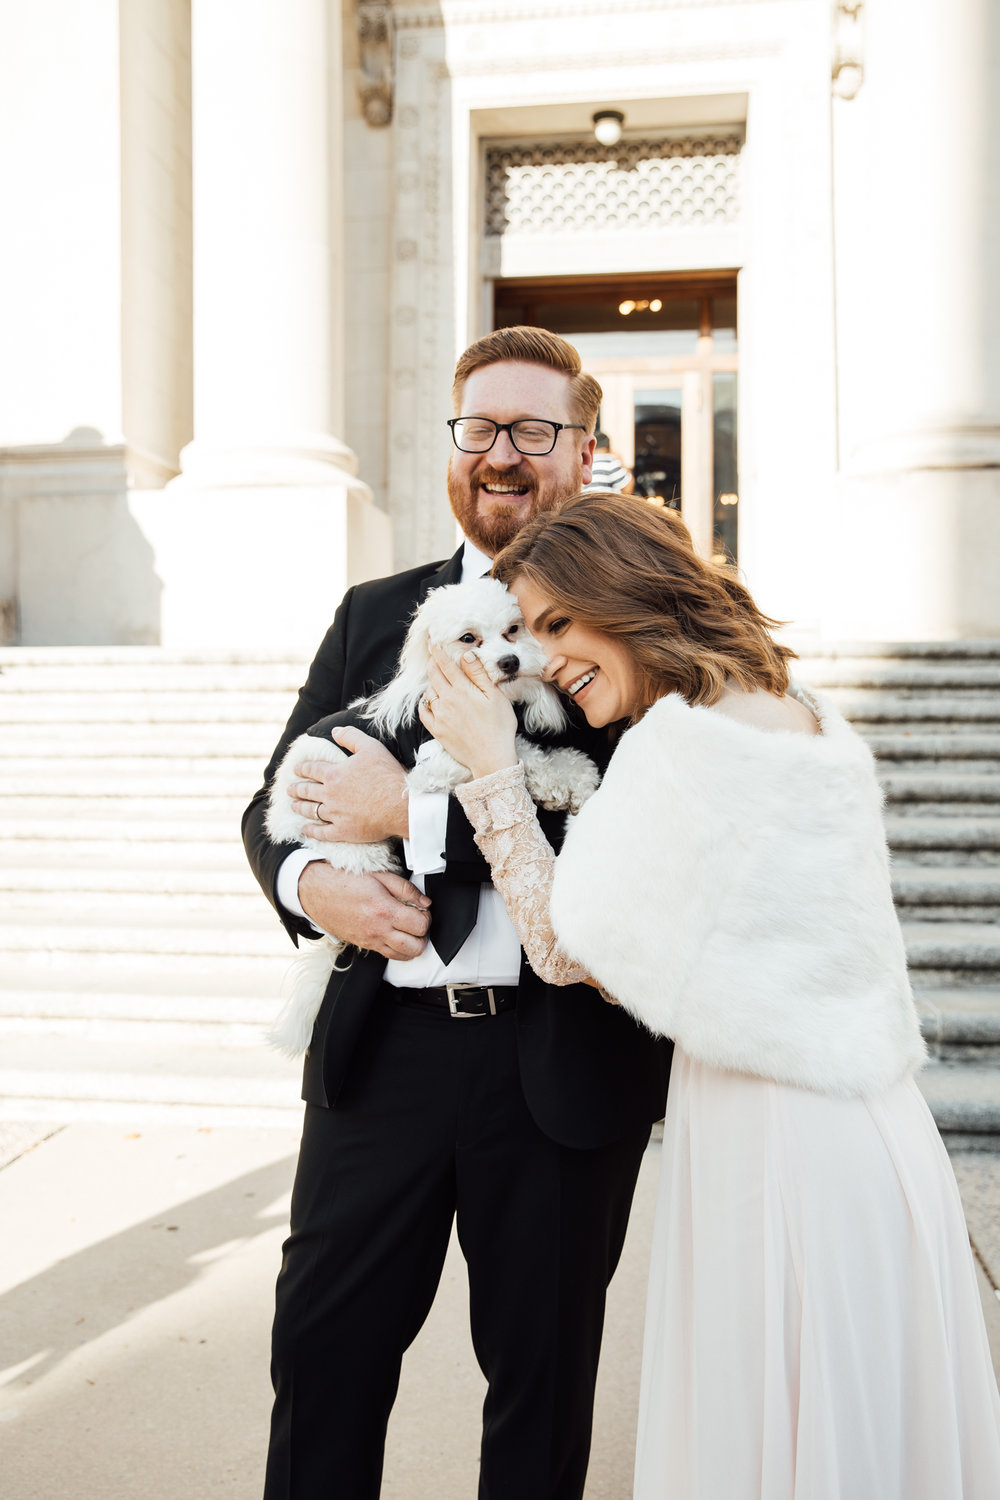 memphis-courthouse-elopement-thewarmtharoundyou-amanda-michael (111 of 143).jpg